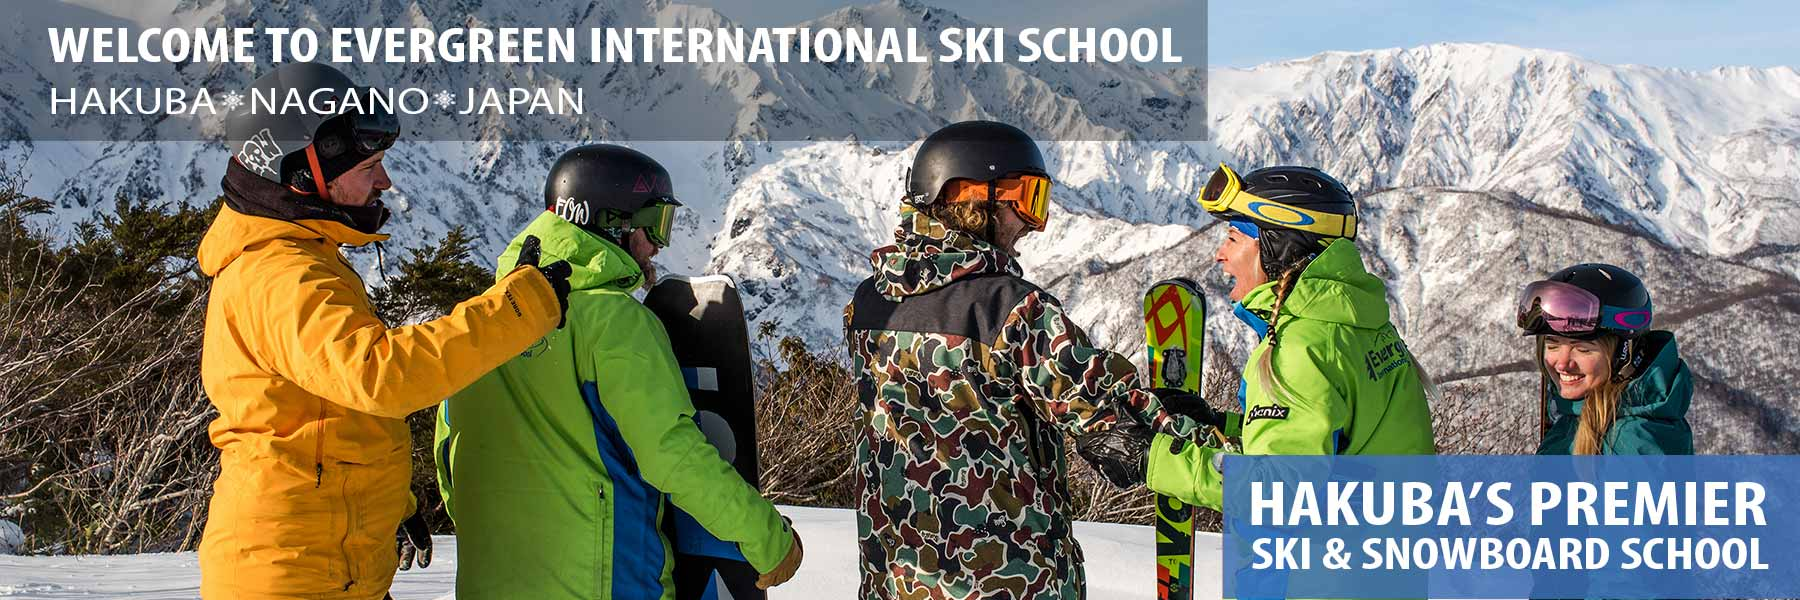 hakuba ski school header - group snowboard lessons